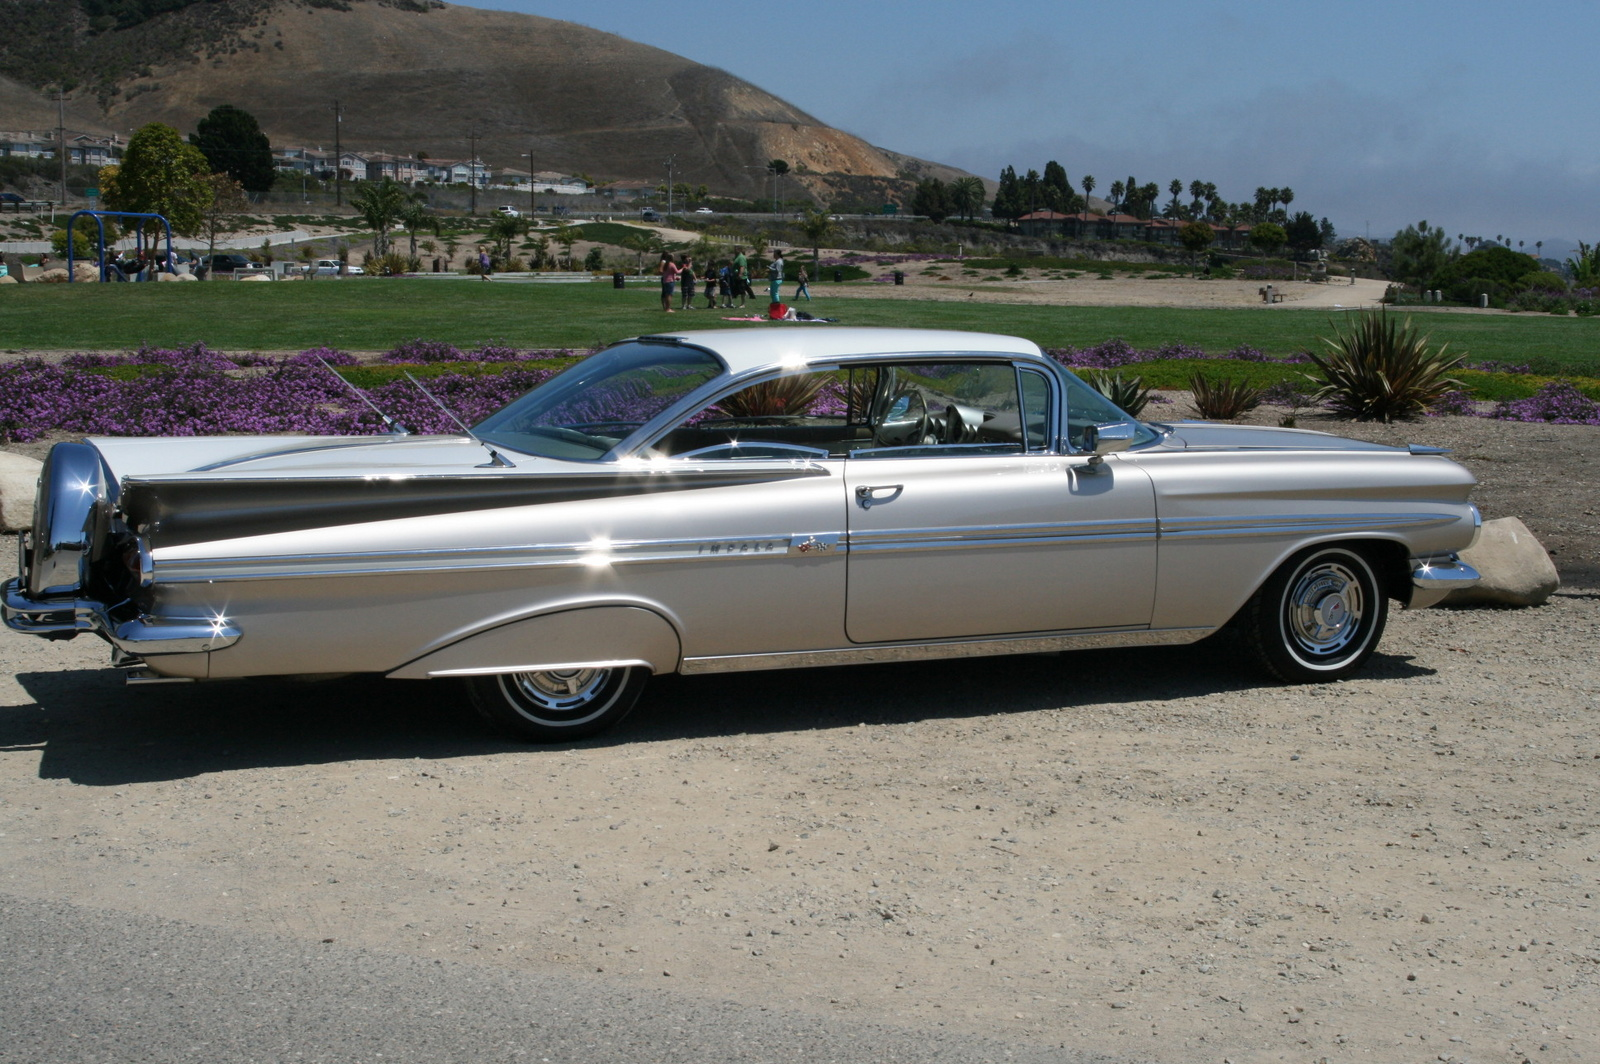 Used 2014 Chevy Impala >> 1959 Chevrolet Impala - Pictures - CarGurus